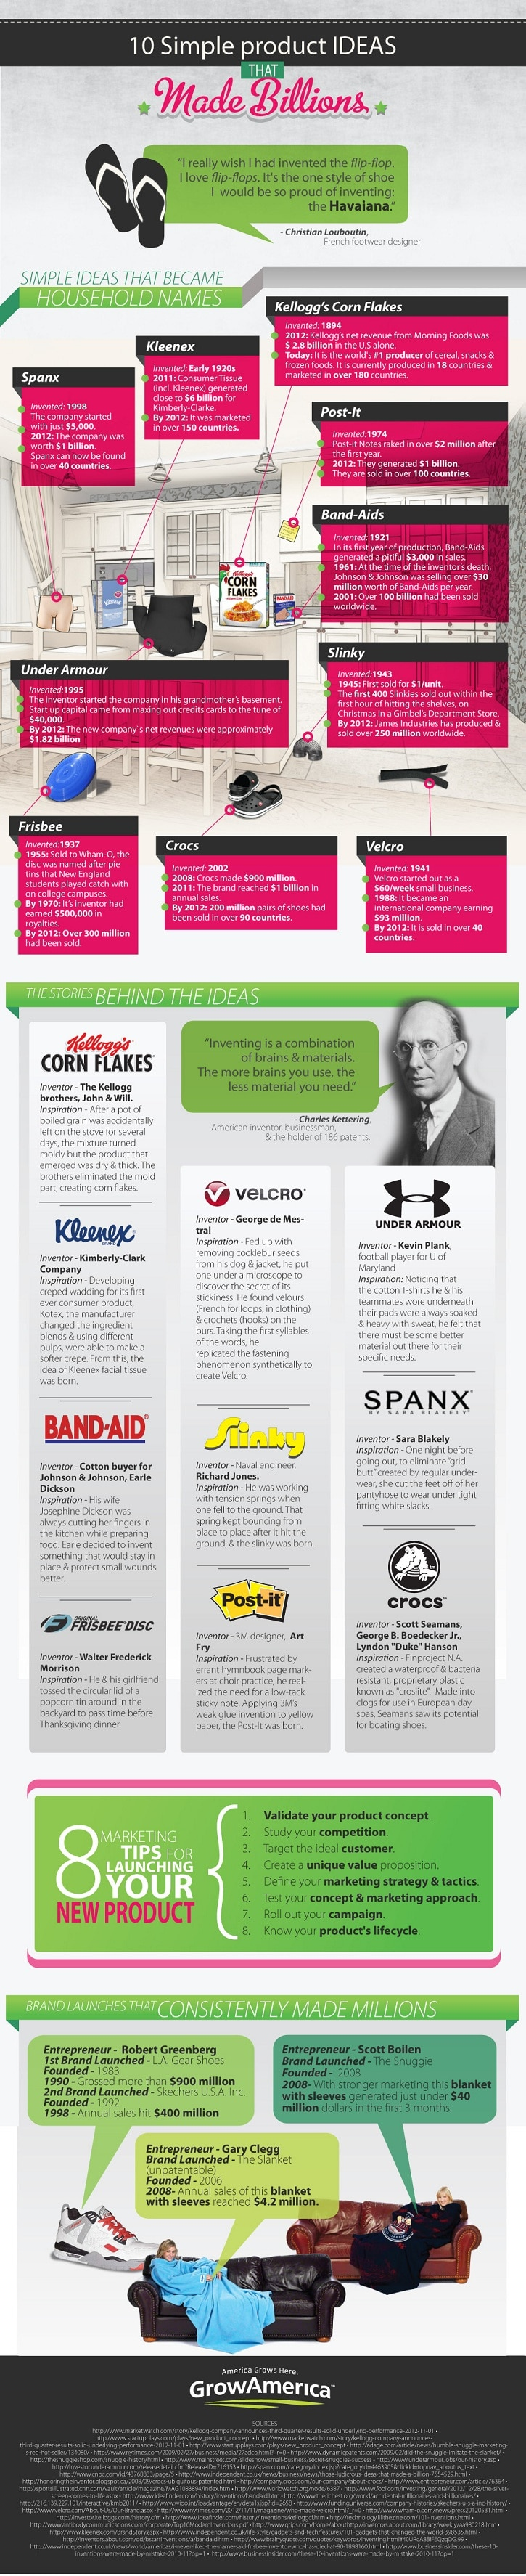 10-simple-product-ideas-infographic